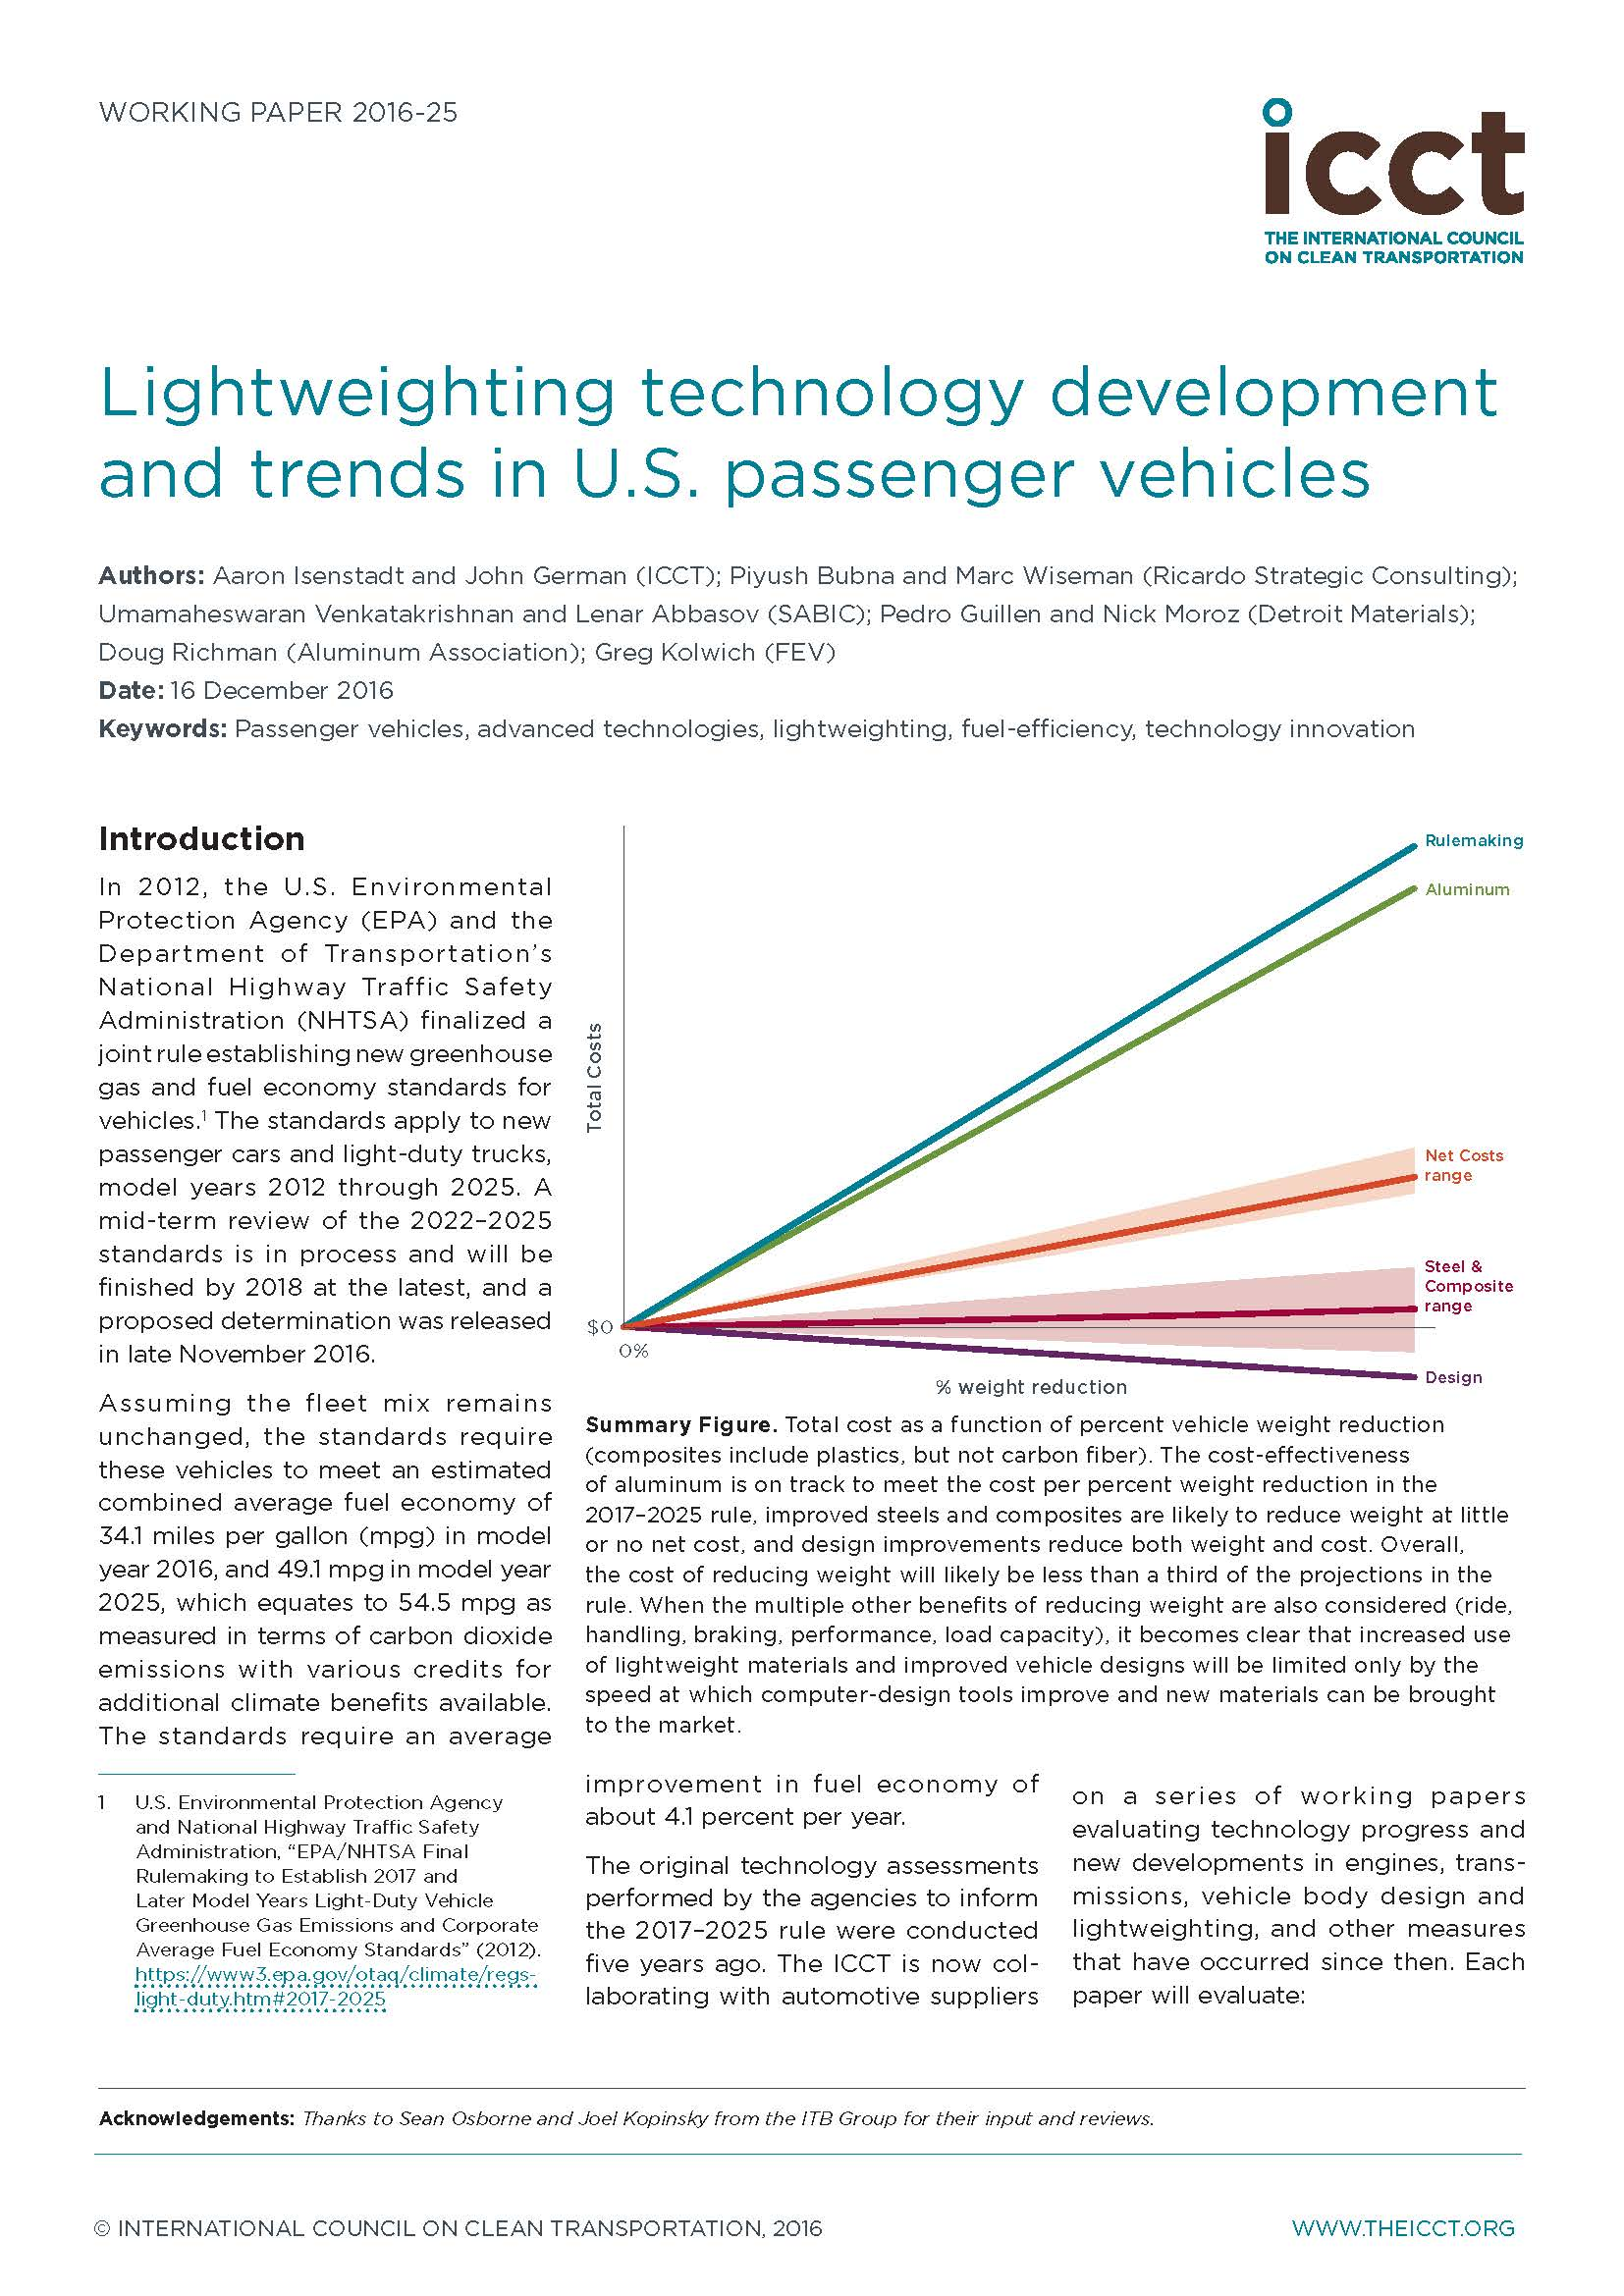 Lightweighting technology development and trends in U.S. passenger vehicles